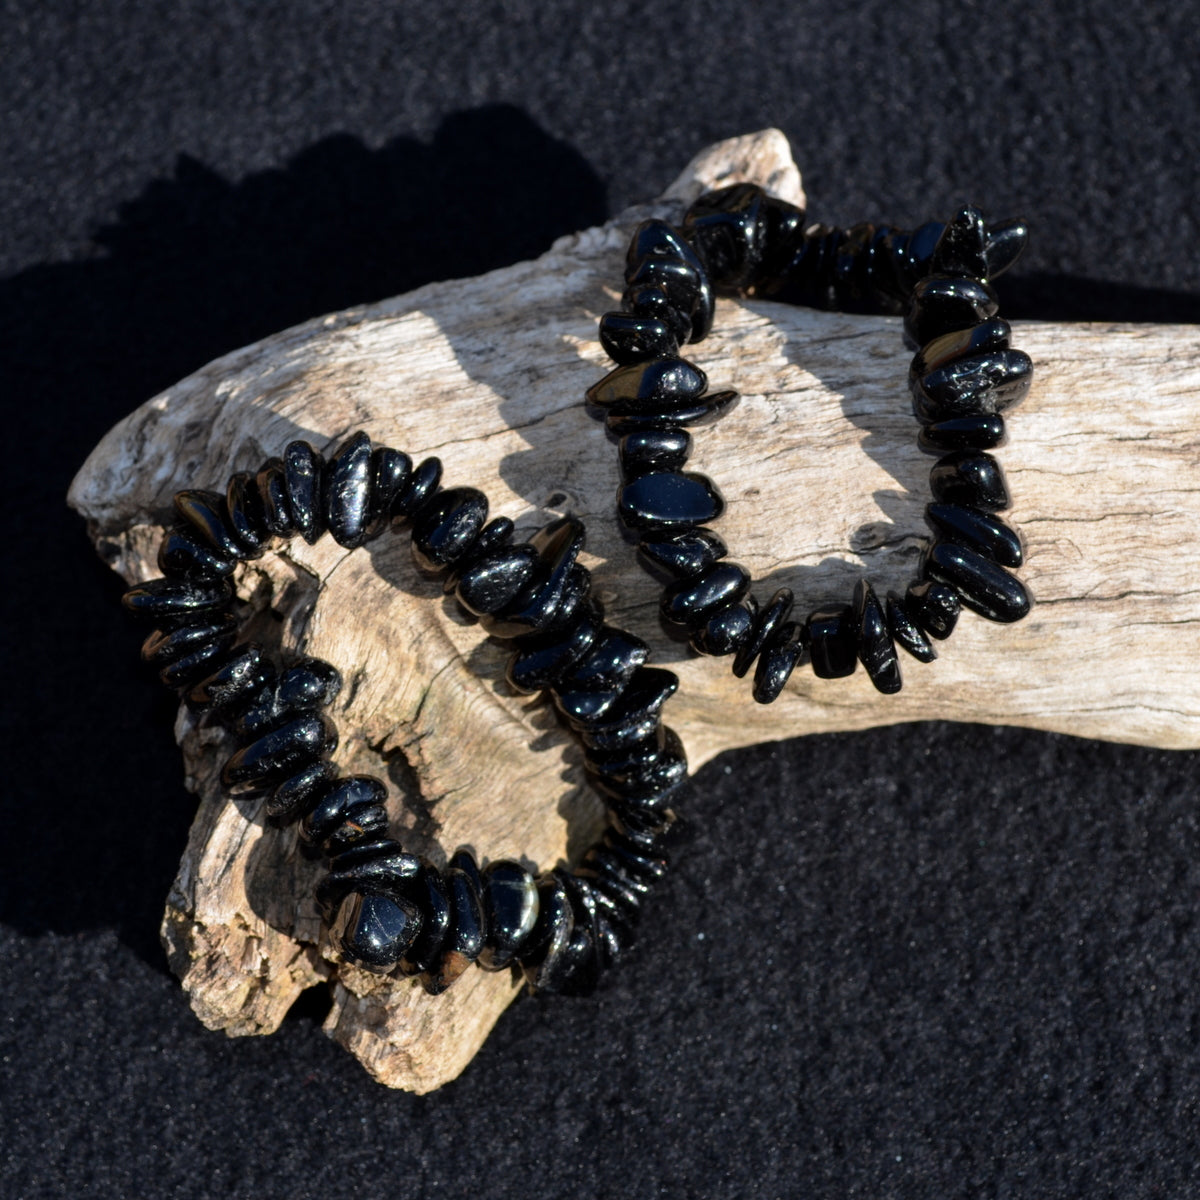 Black Tourmaline Stretch Bracelet - Protection Grounding - Shop Now at Illiom Crystals - Afterpay Available